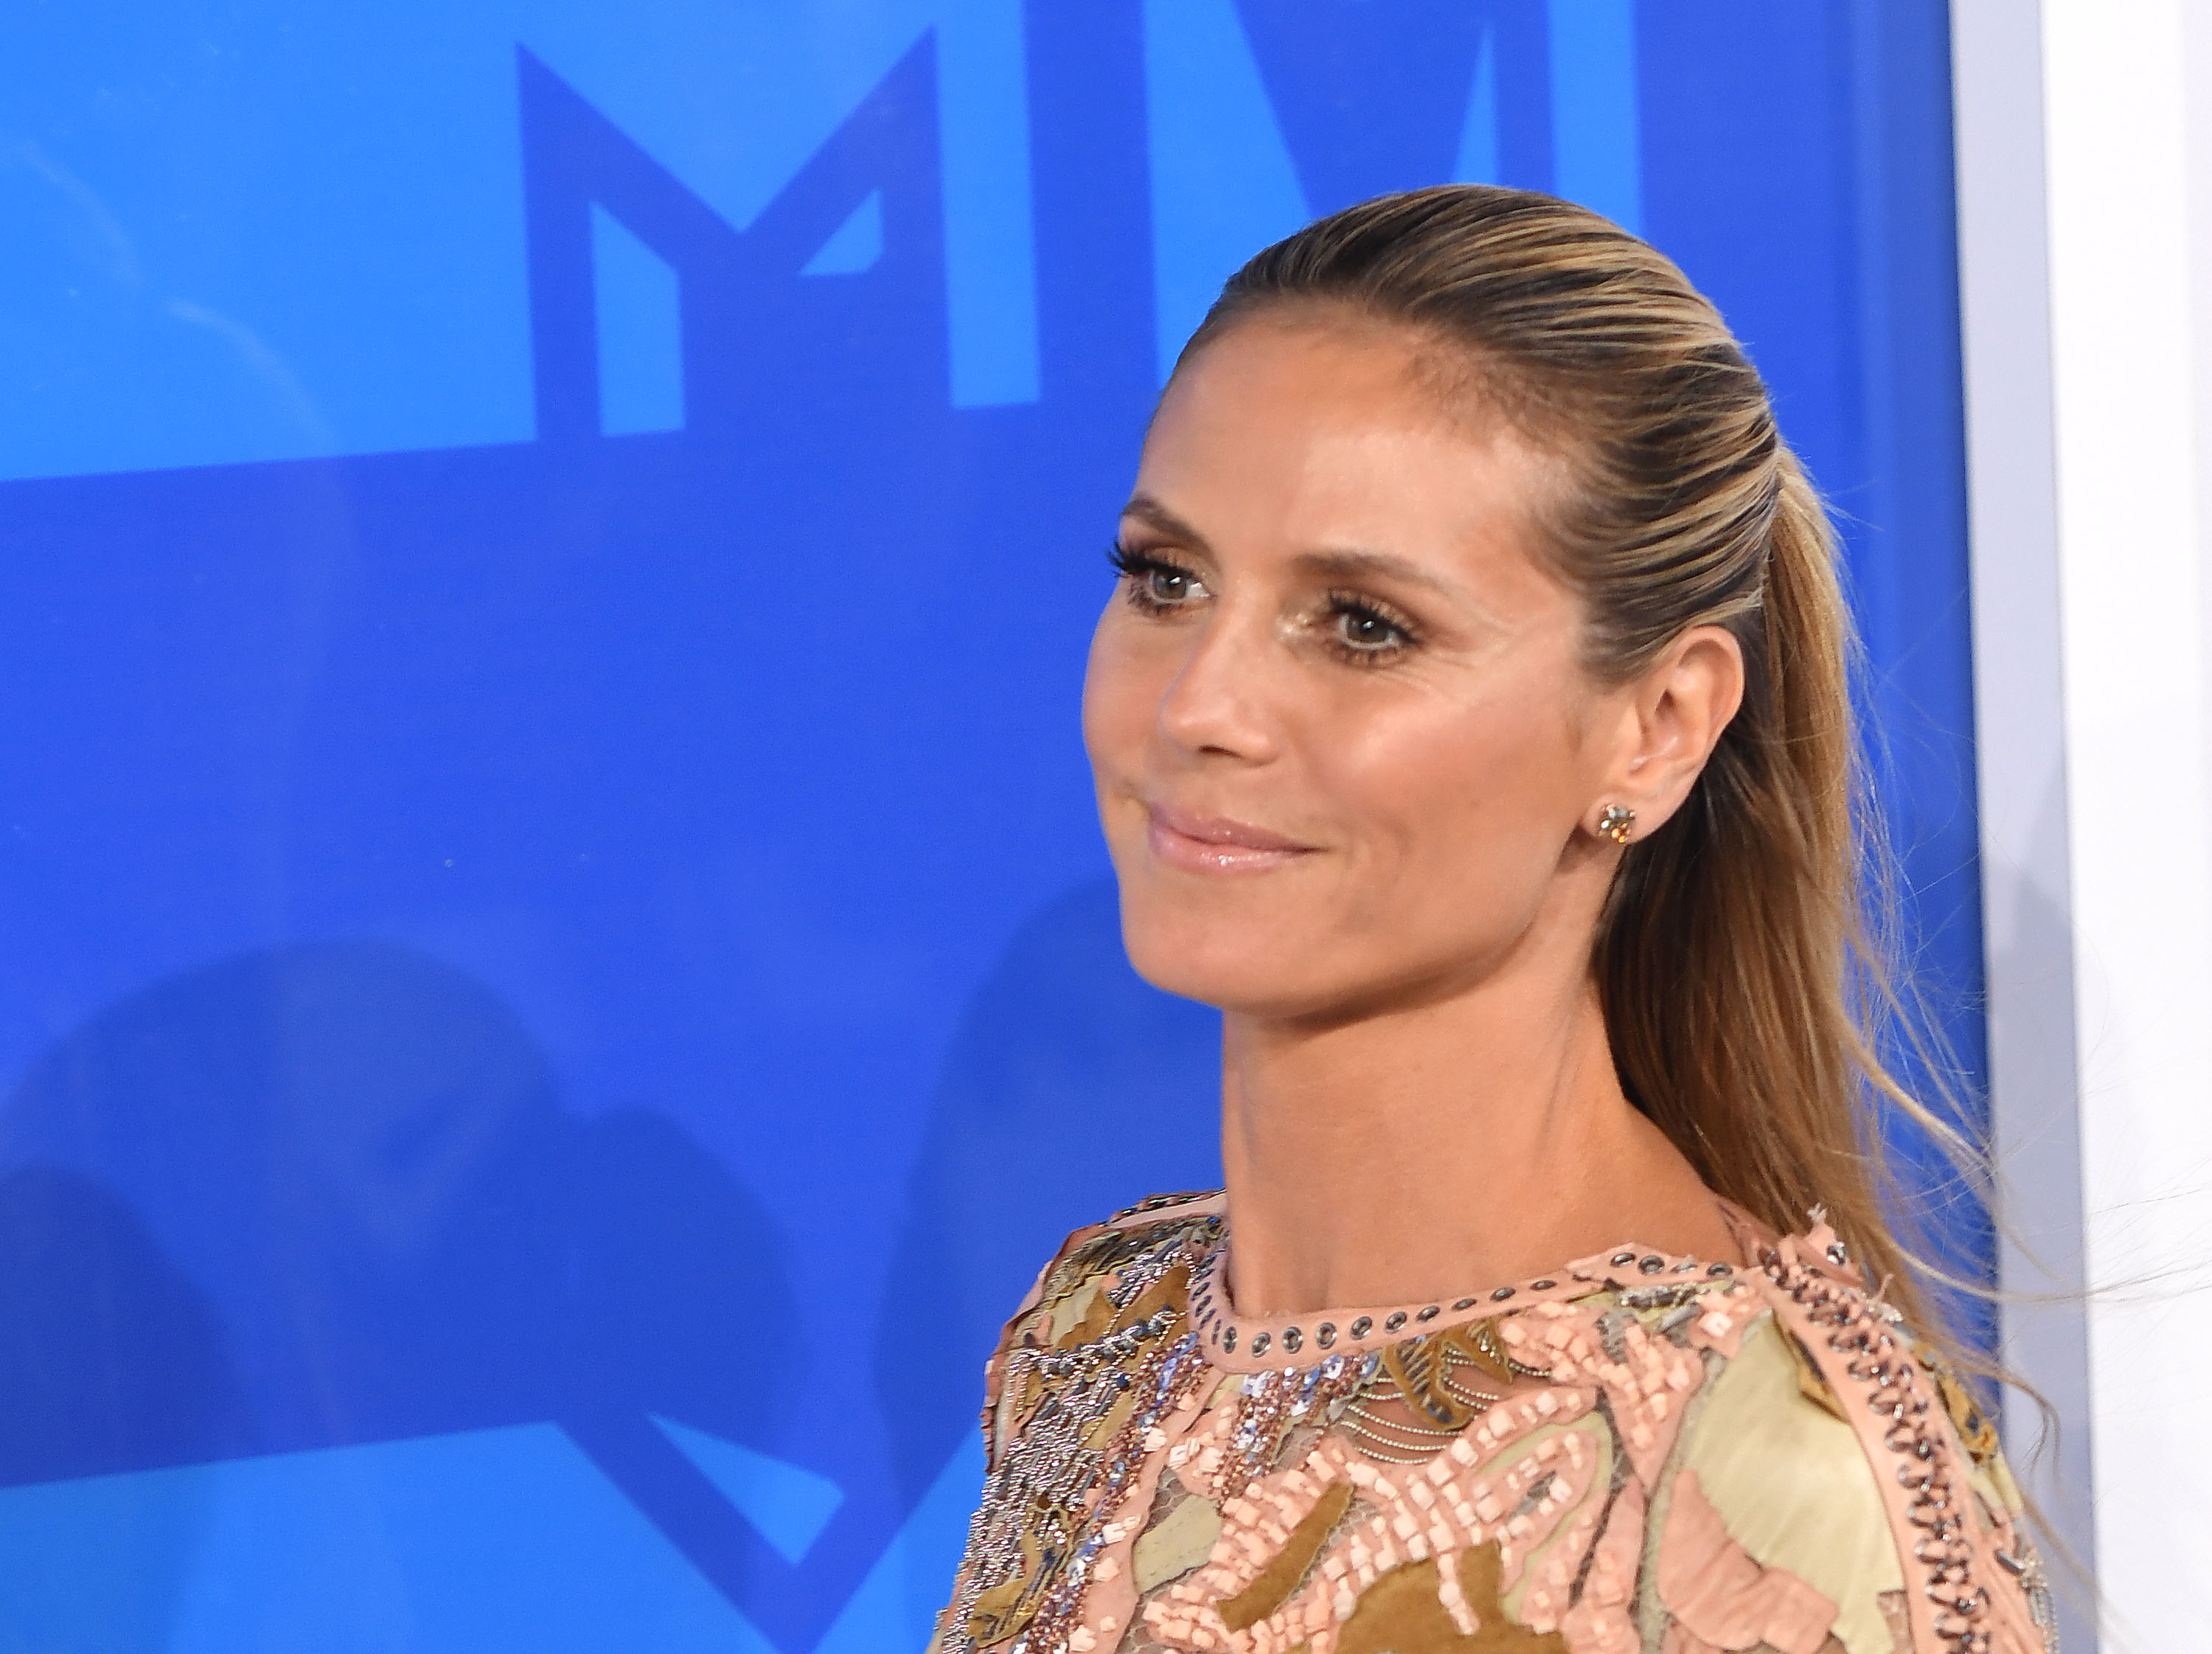 Heidi Klum goes seamlessly from watching tennis to Fashion Week, because she's a boss